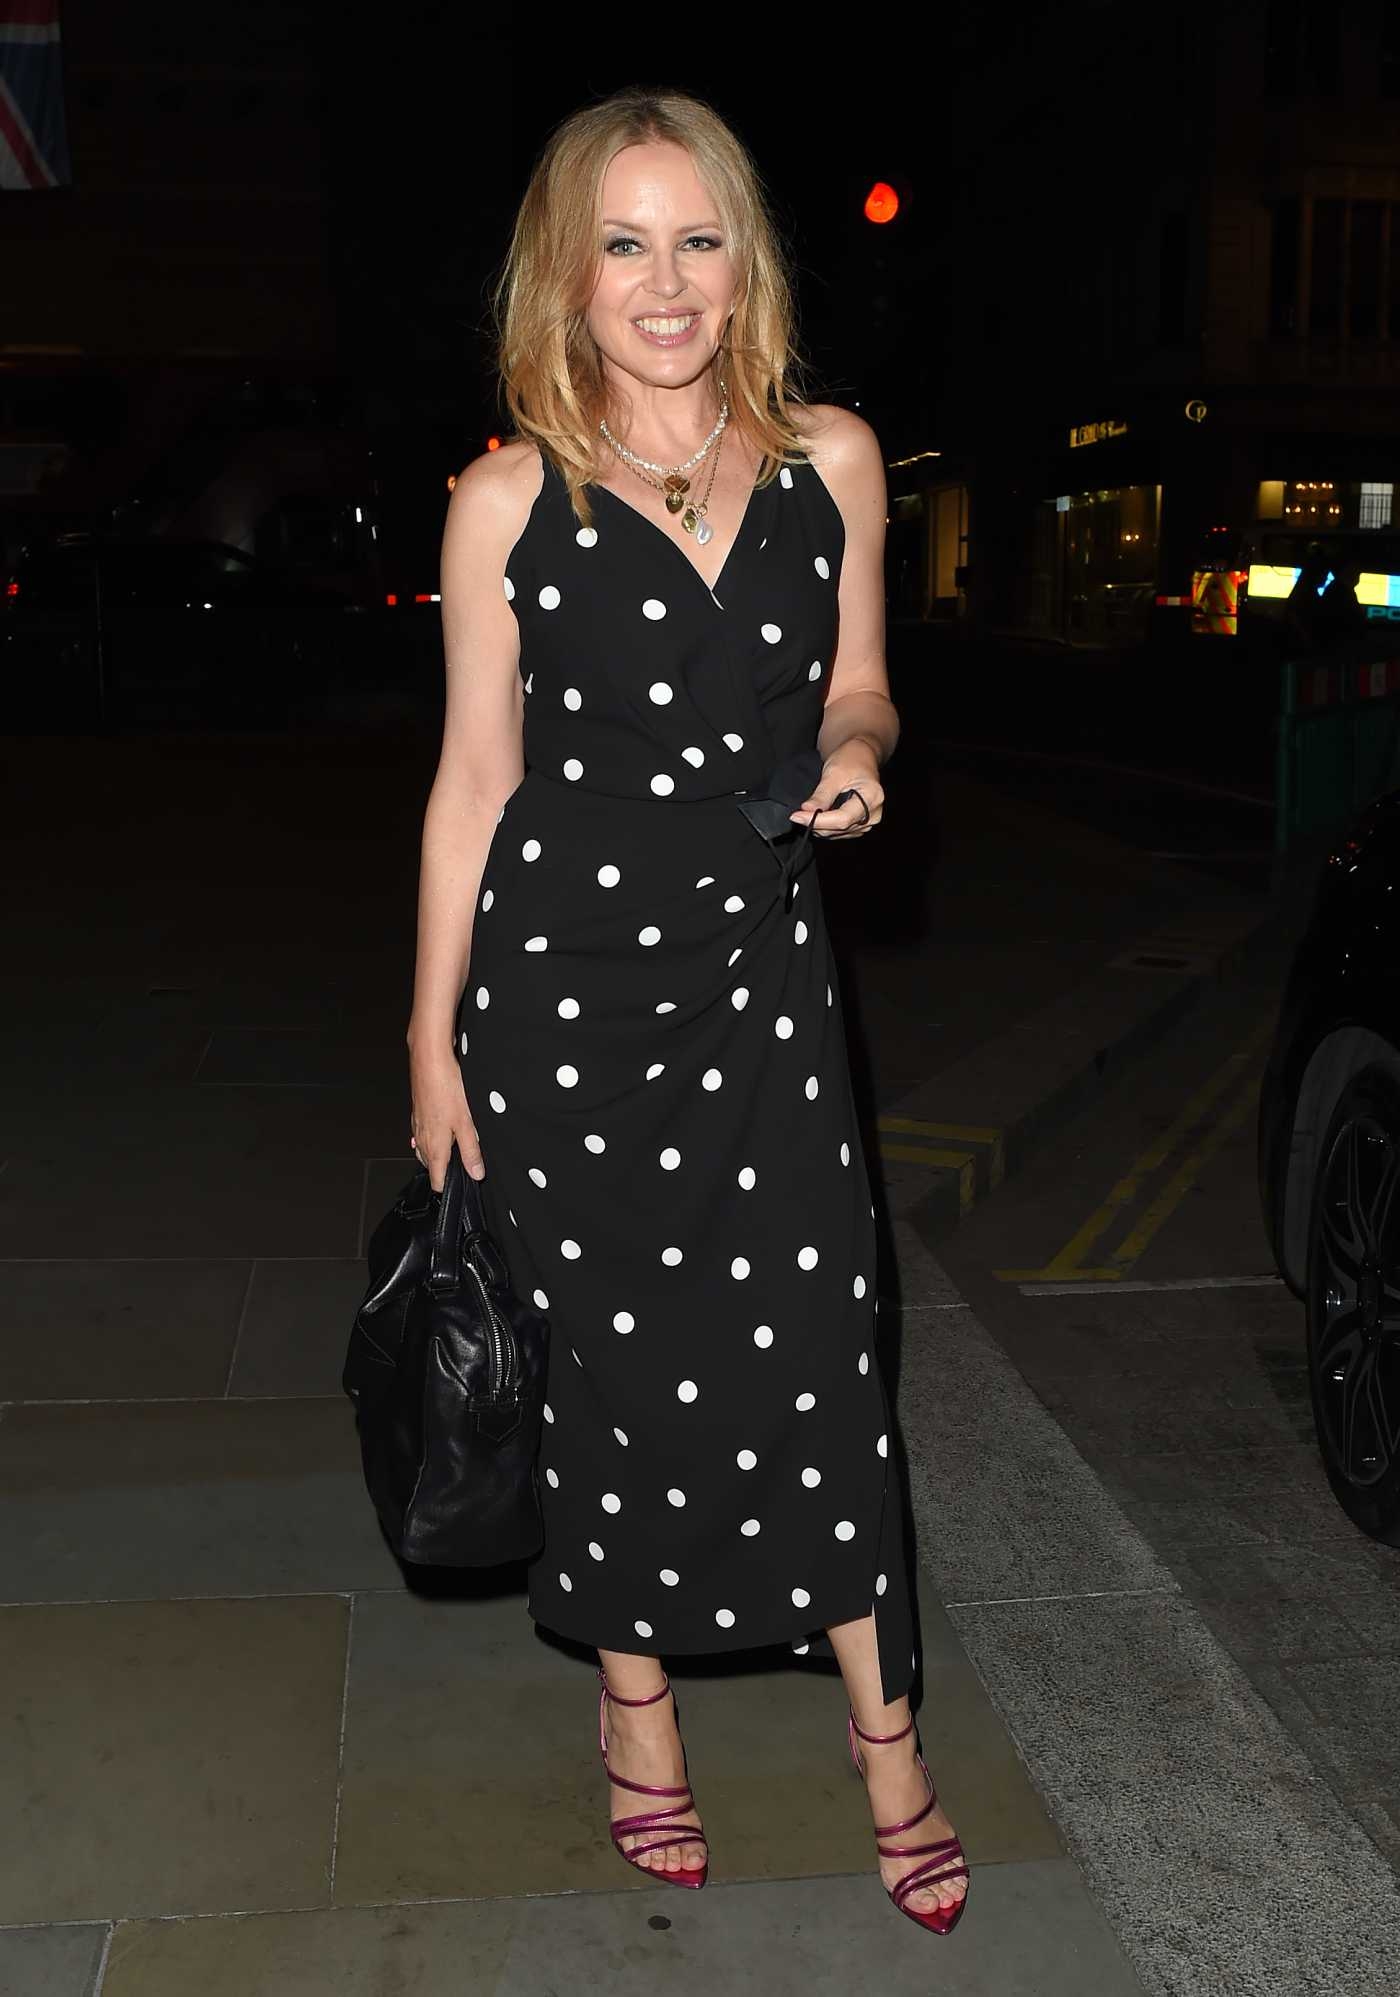 Kylie Minogue in a Black Polka Dot Dress Enjoys a Night Out at the Ritz Hotel in Mayfair, London 09/21/2020